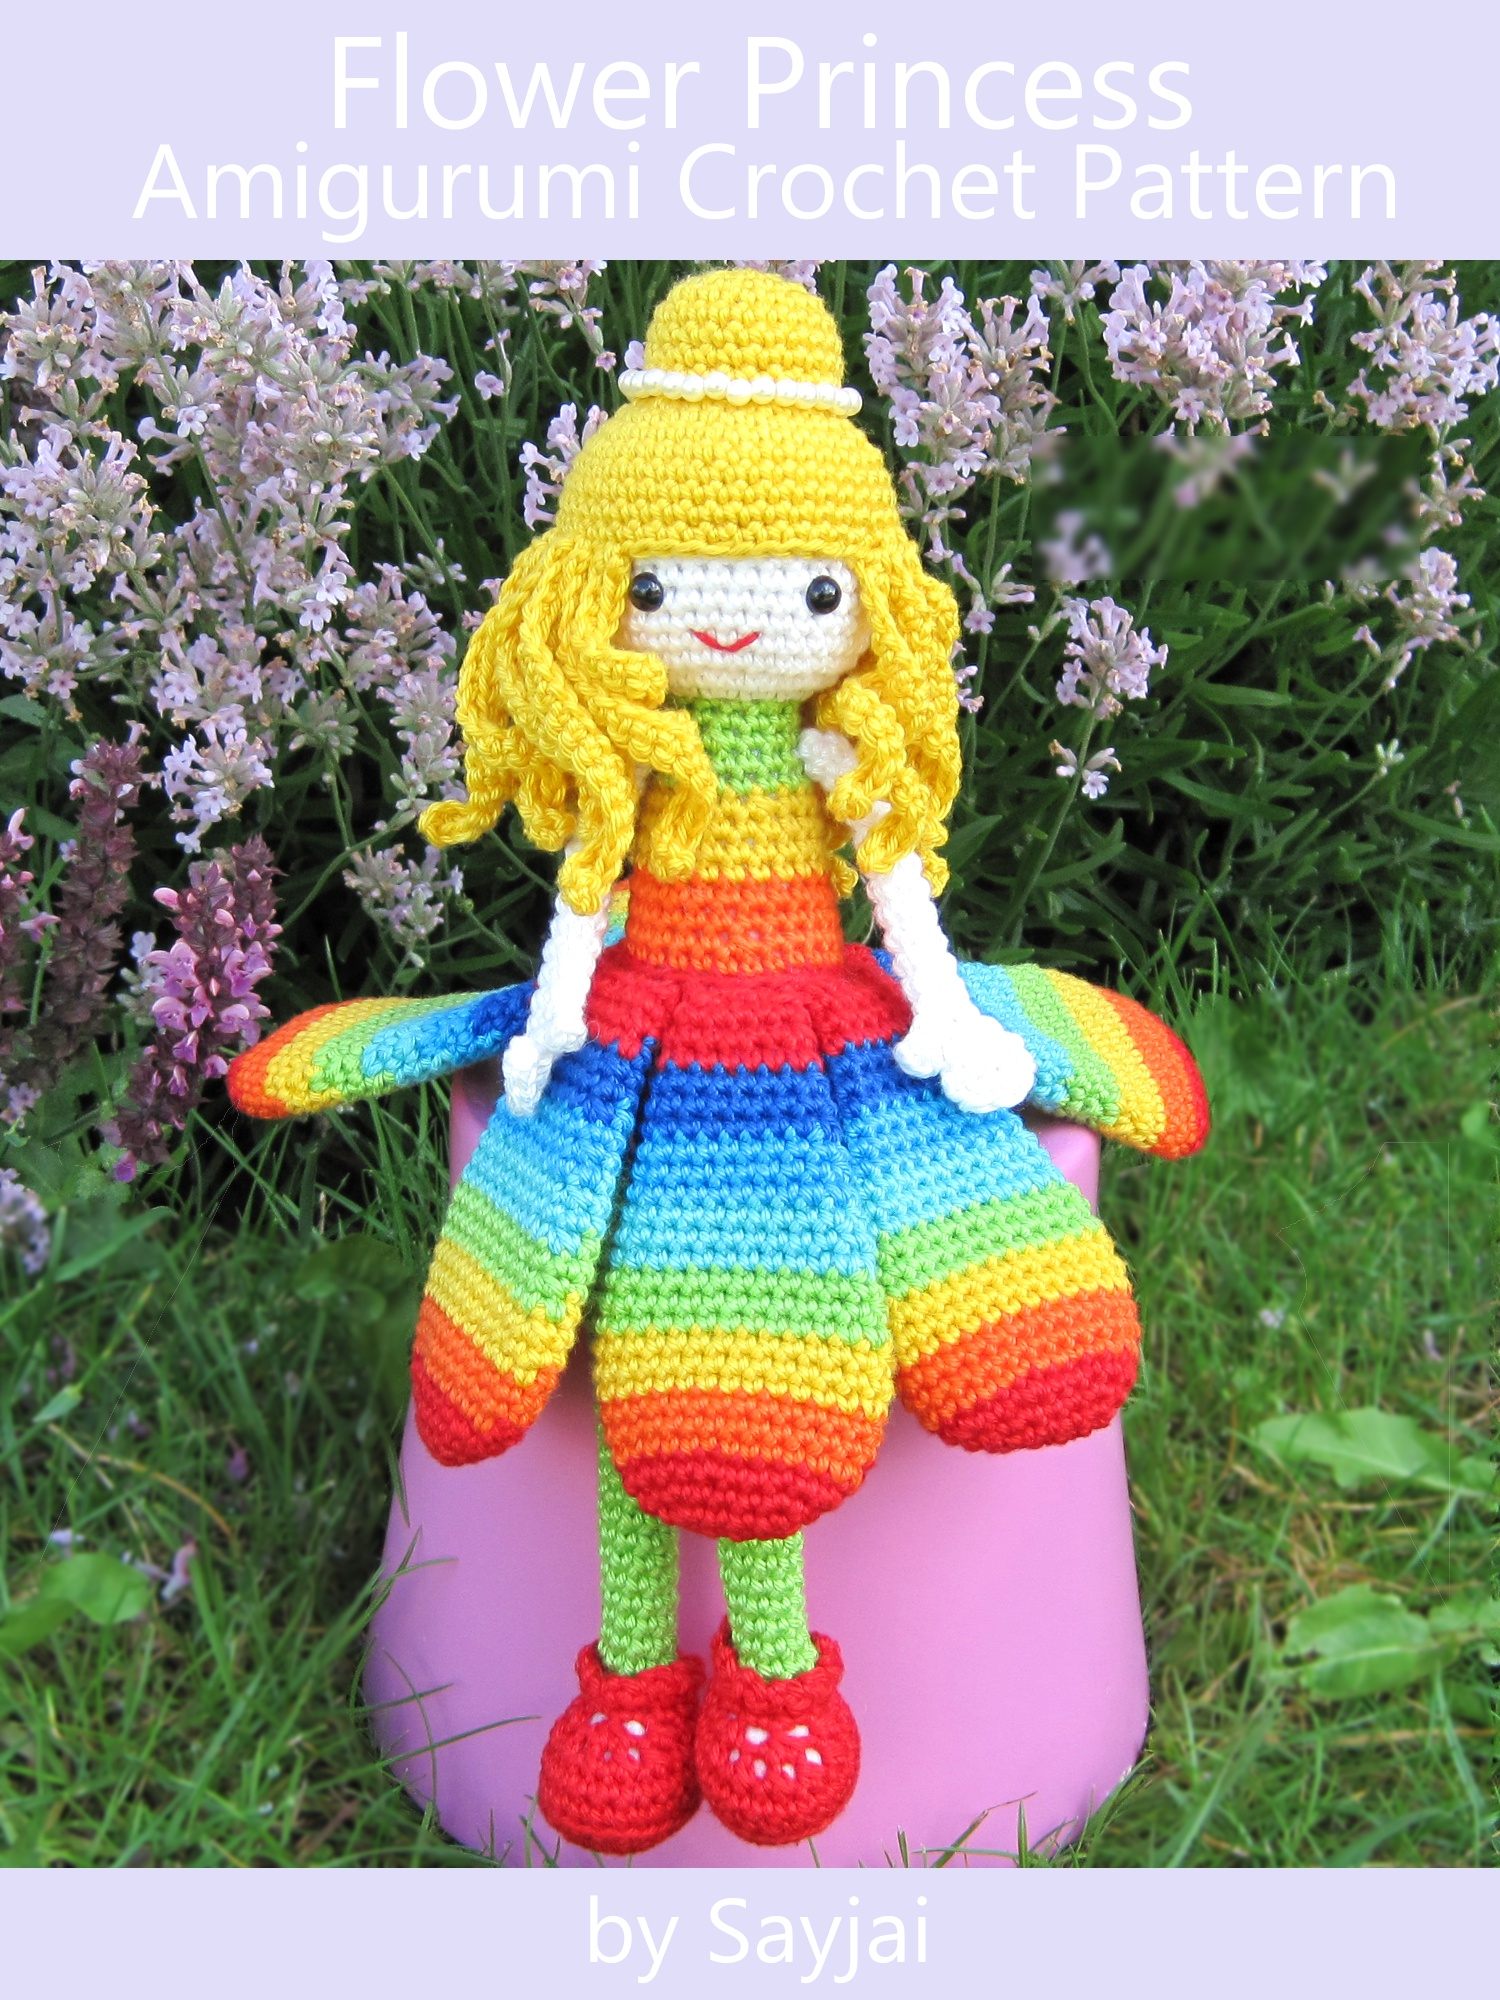 Amigurumi Crochet Flowers : Smashwords Flower Princess Amigurumi Crochet Pattern a ...